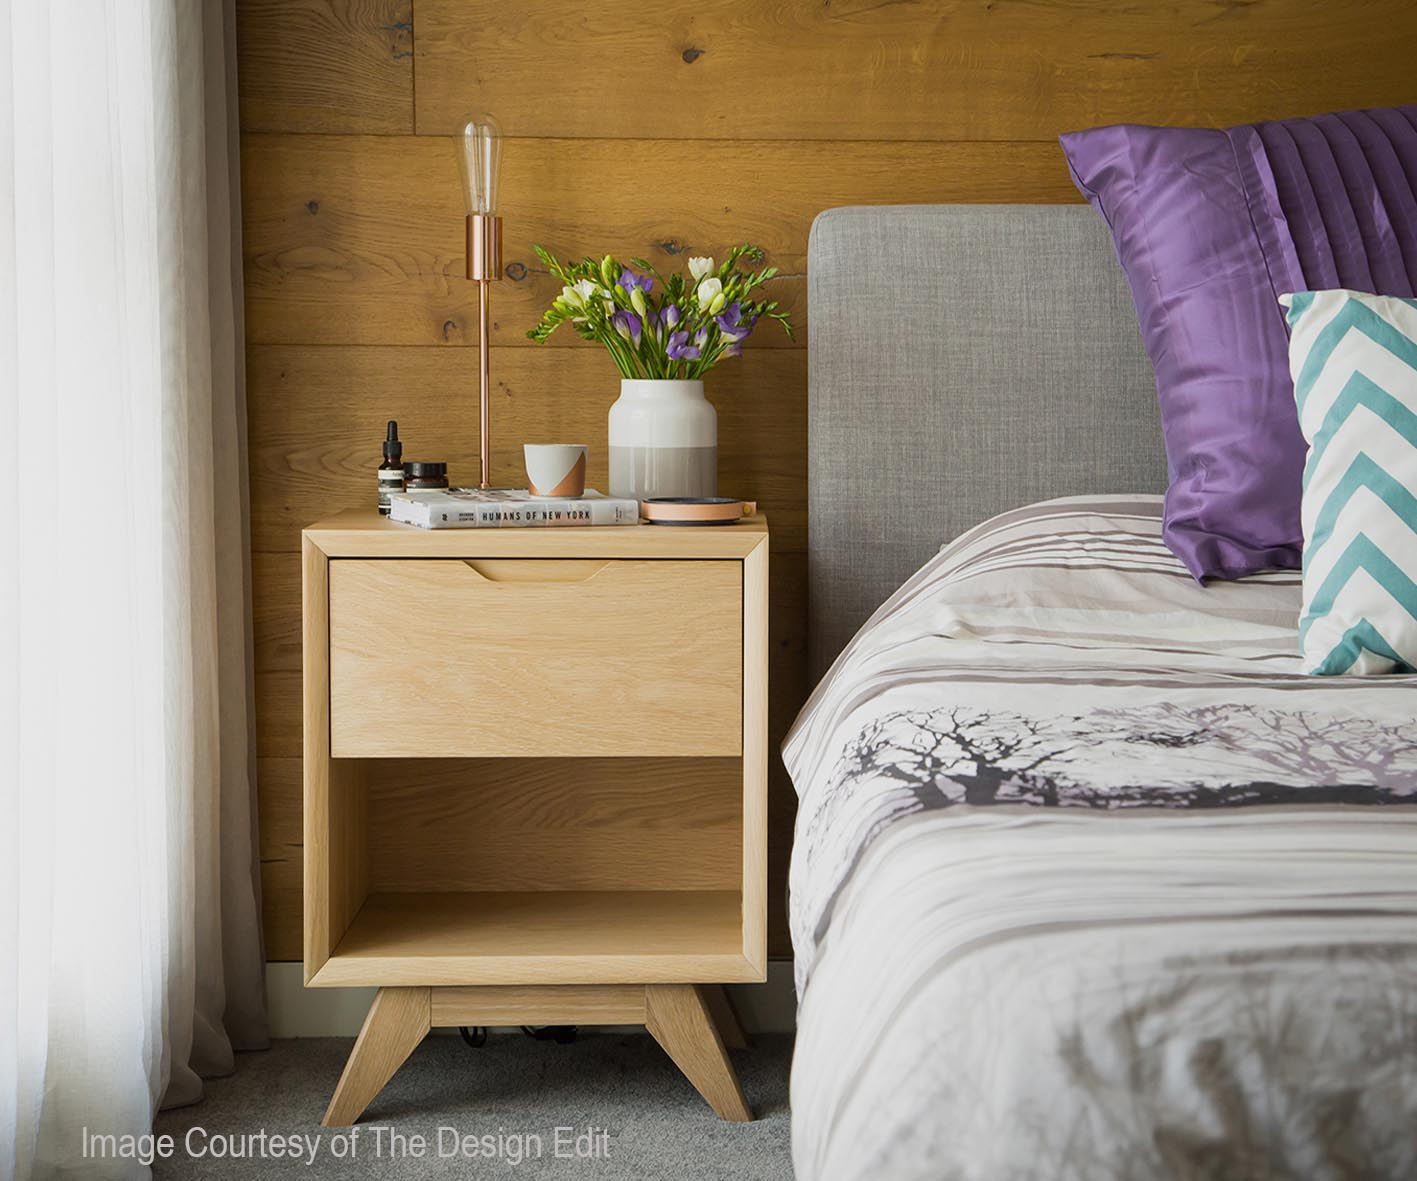 How-To-Create-Scandinavian-Style-In-Your-Home - How-To-Create-Scandinavian-Style-In-Your-Home